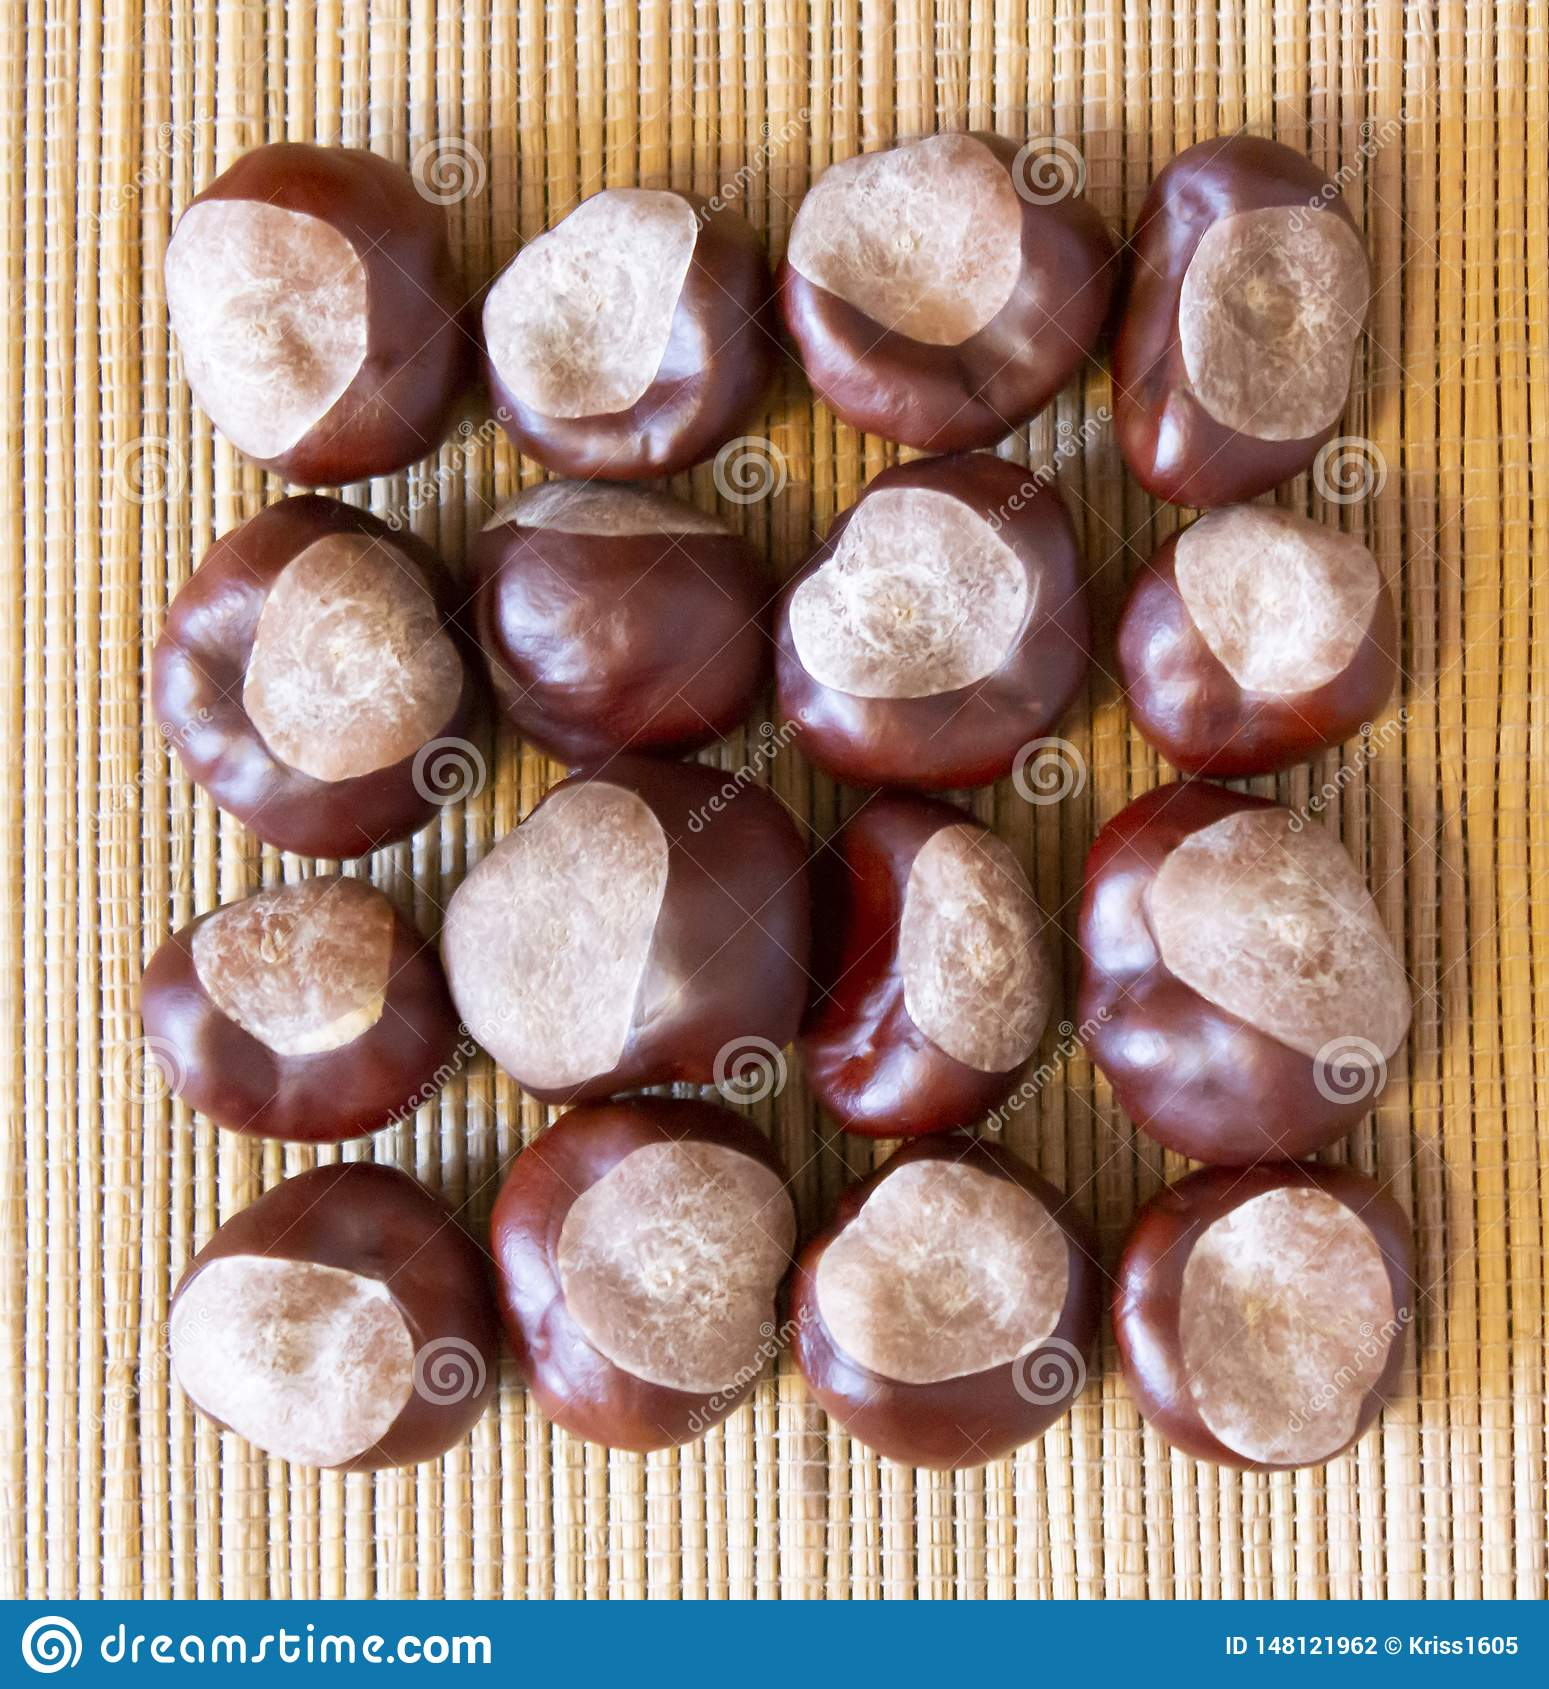 a square of peeled chestnuts on a natural brown mat